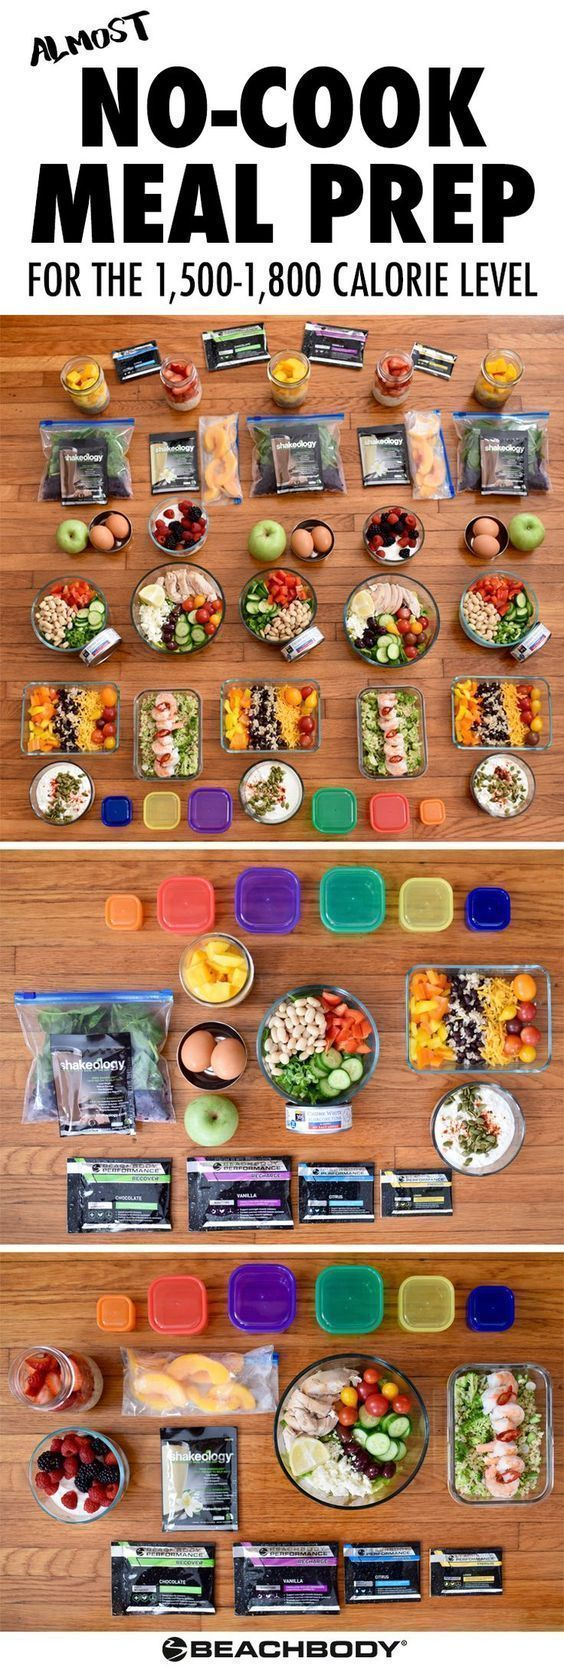 21 Day Fix Meal Plan 500 Calorie: If You're In For Some Busy Weeks Ahead, Make Sure You've